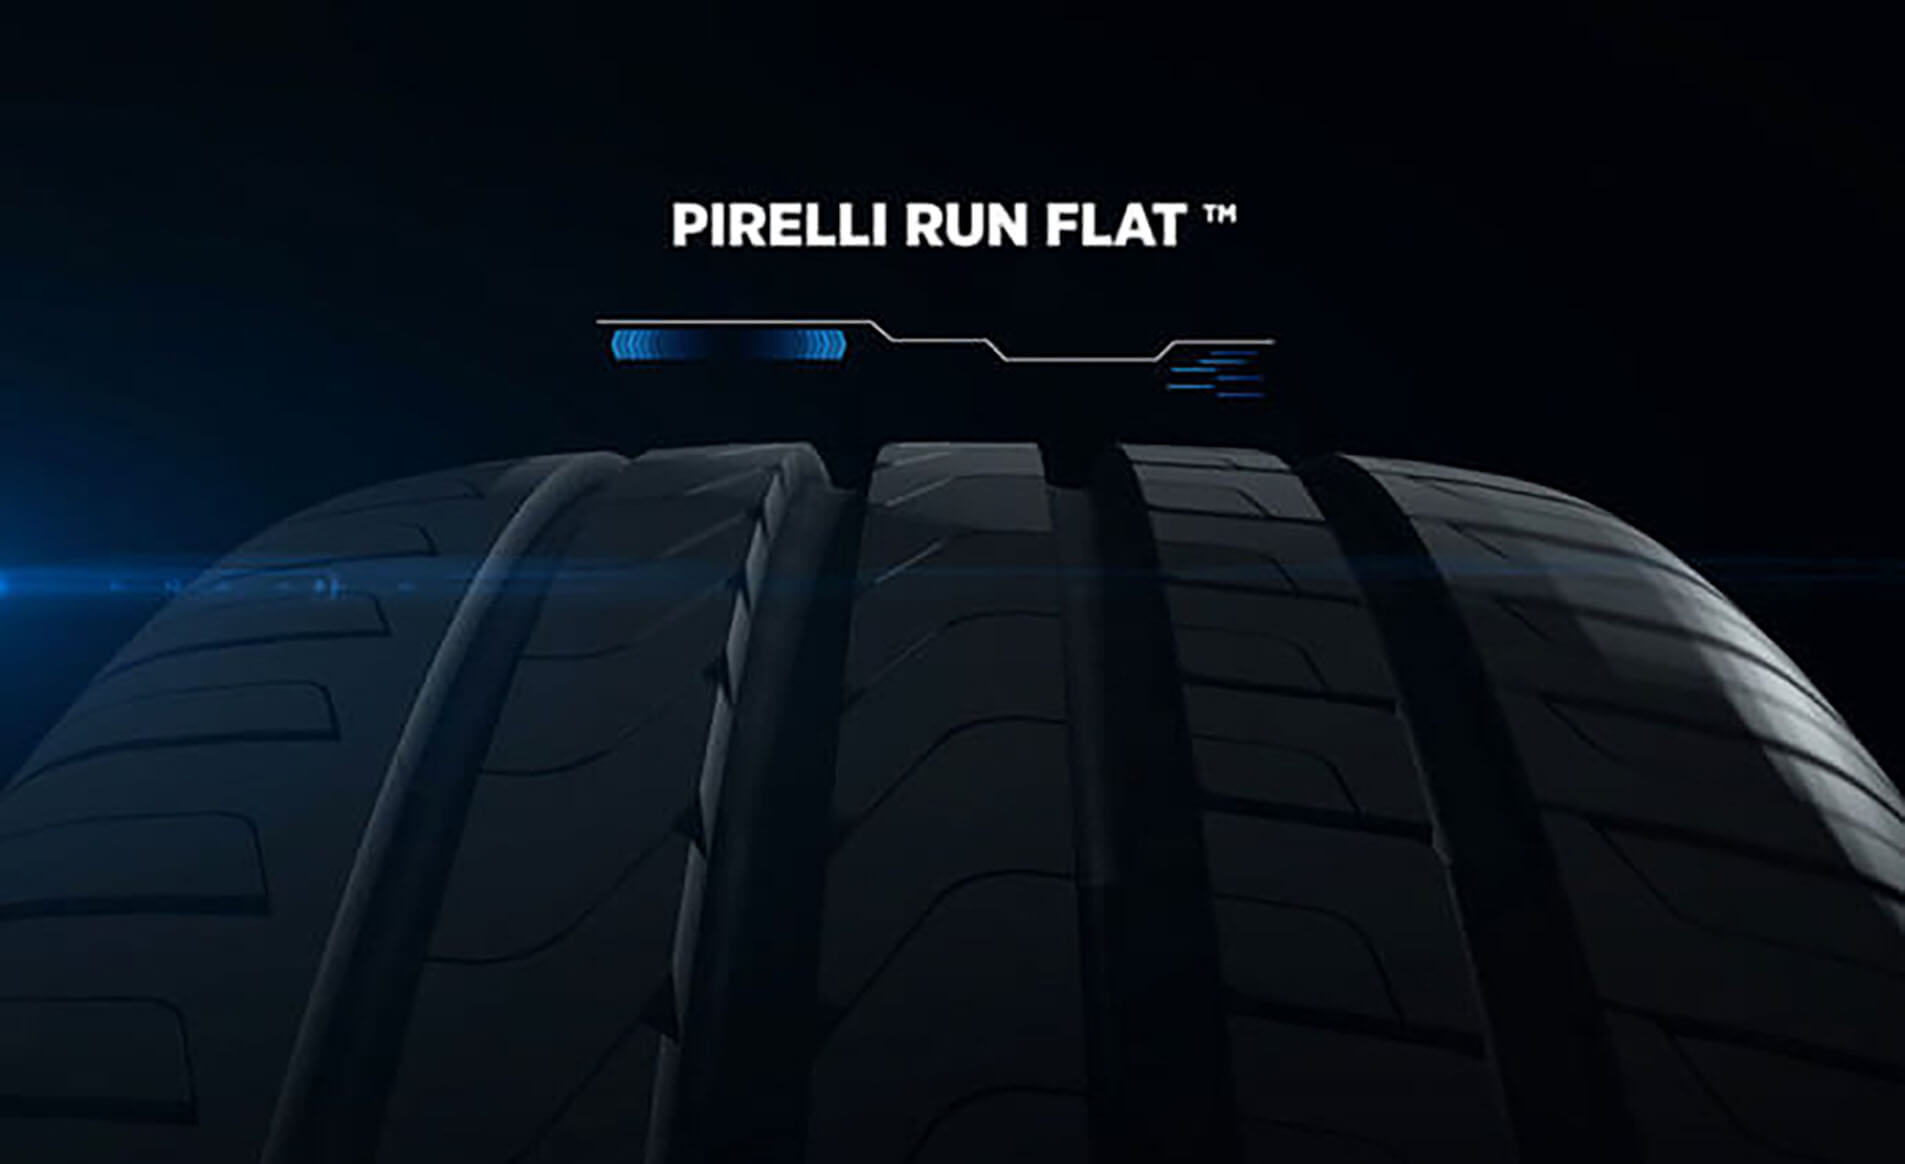 HOW RUN FLAT TYRES WORK